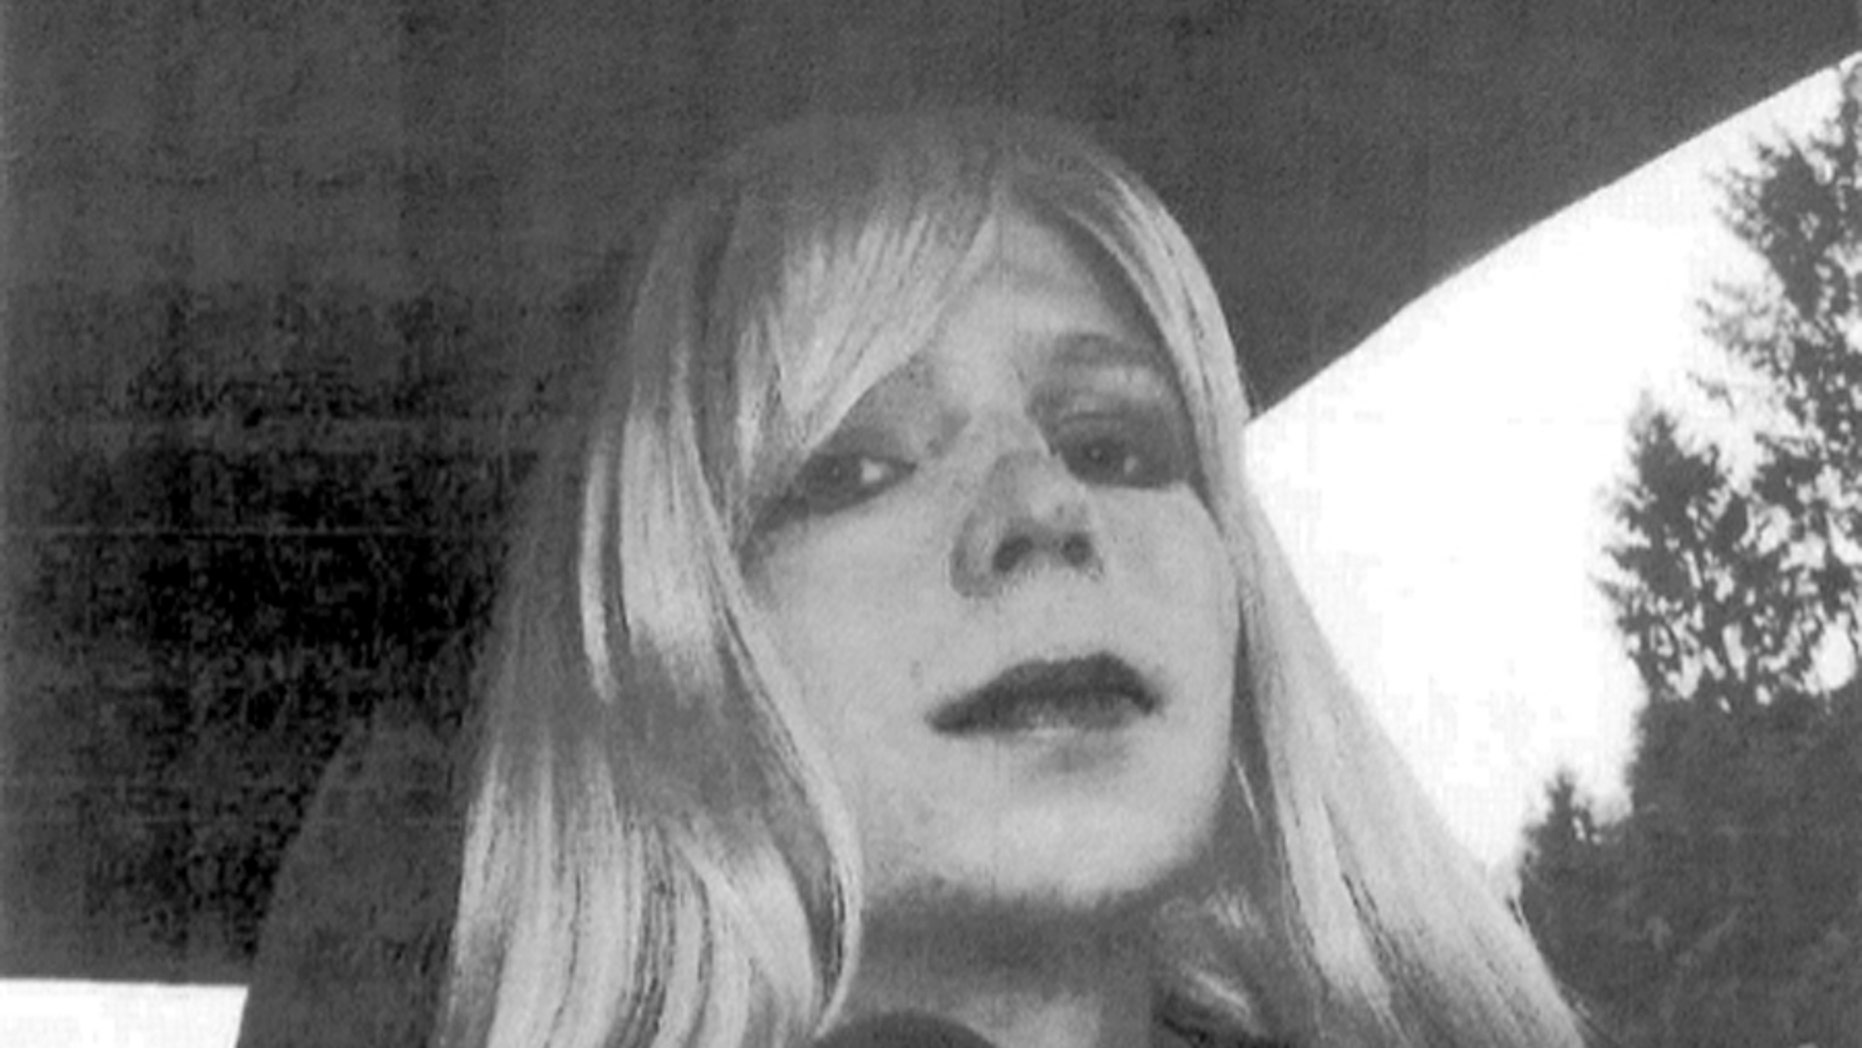 In this undated file photo provided by the U.S. Army, Pfc. Bradley Manning, now known as Chelsea Elizabeth Manning, poses for a photo wearing a wig and lipstick.